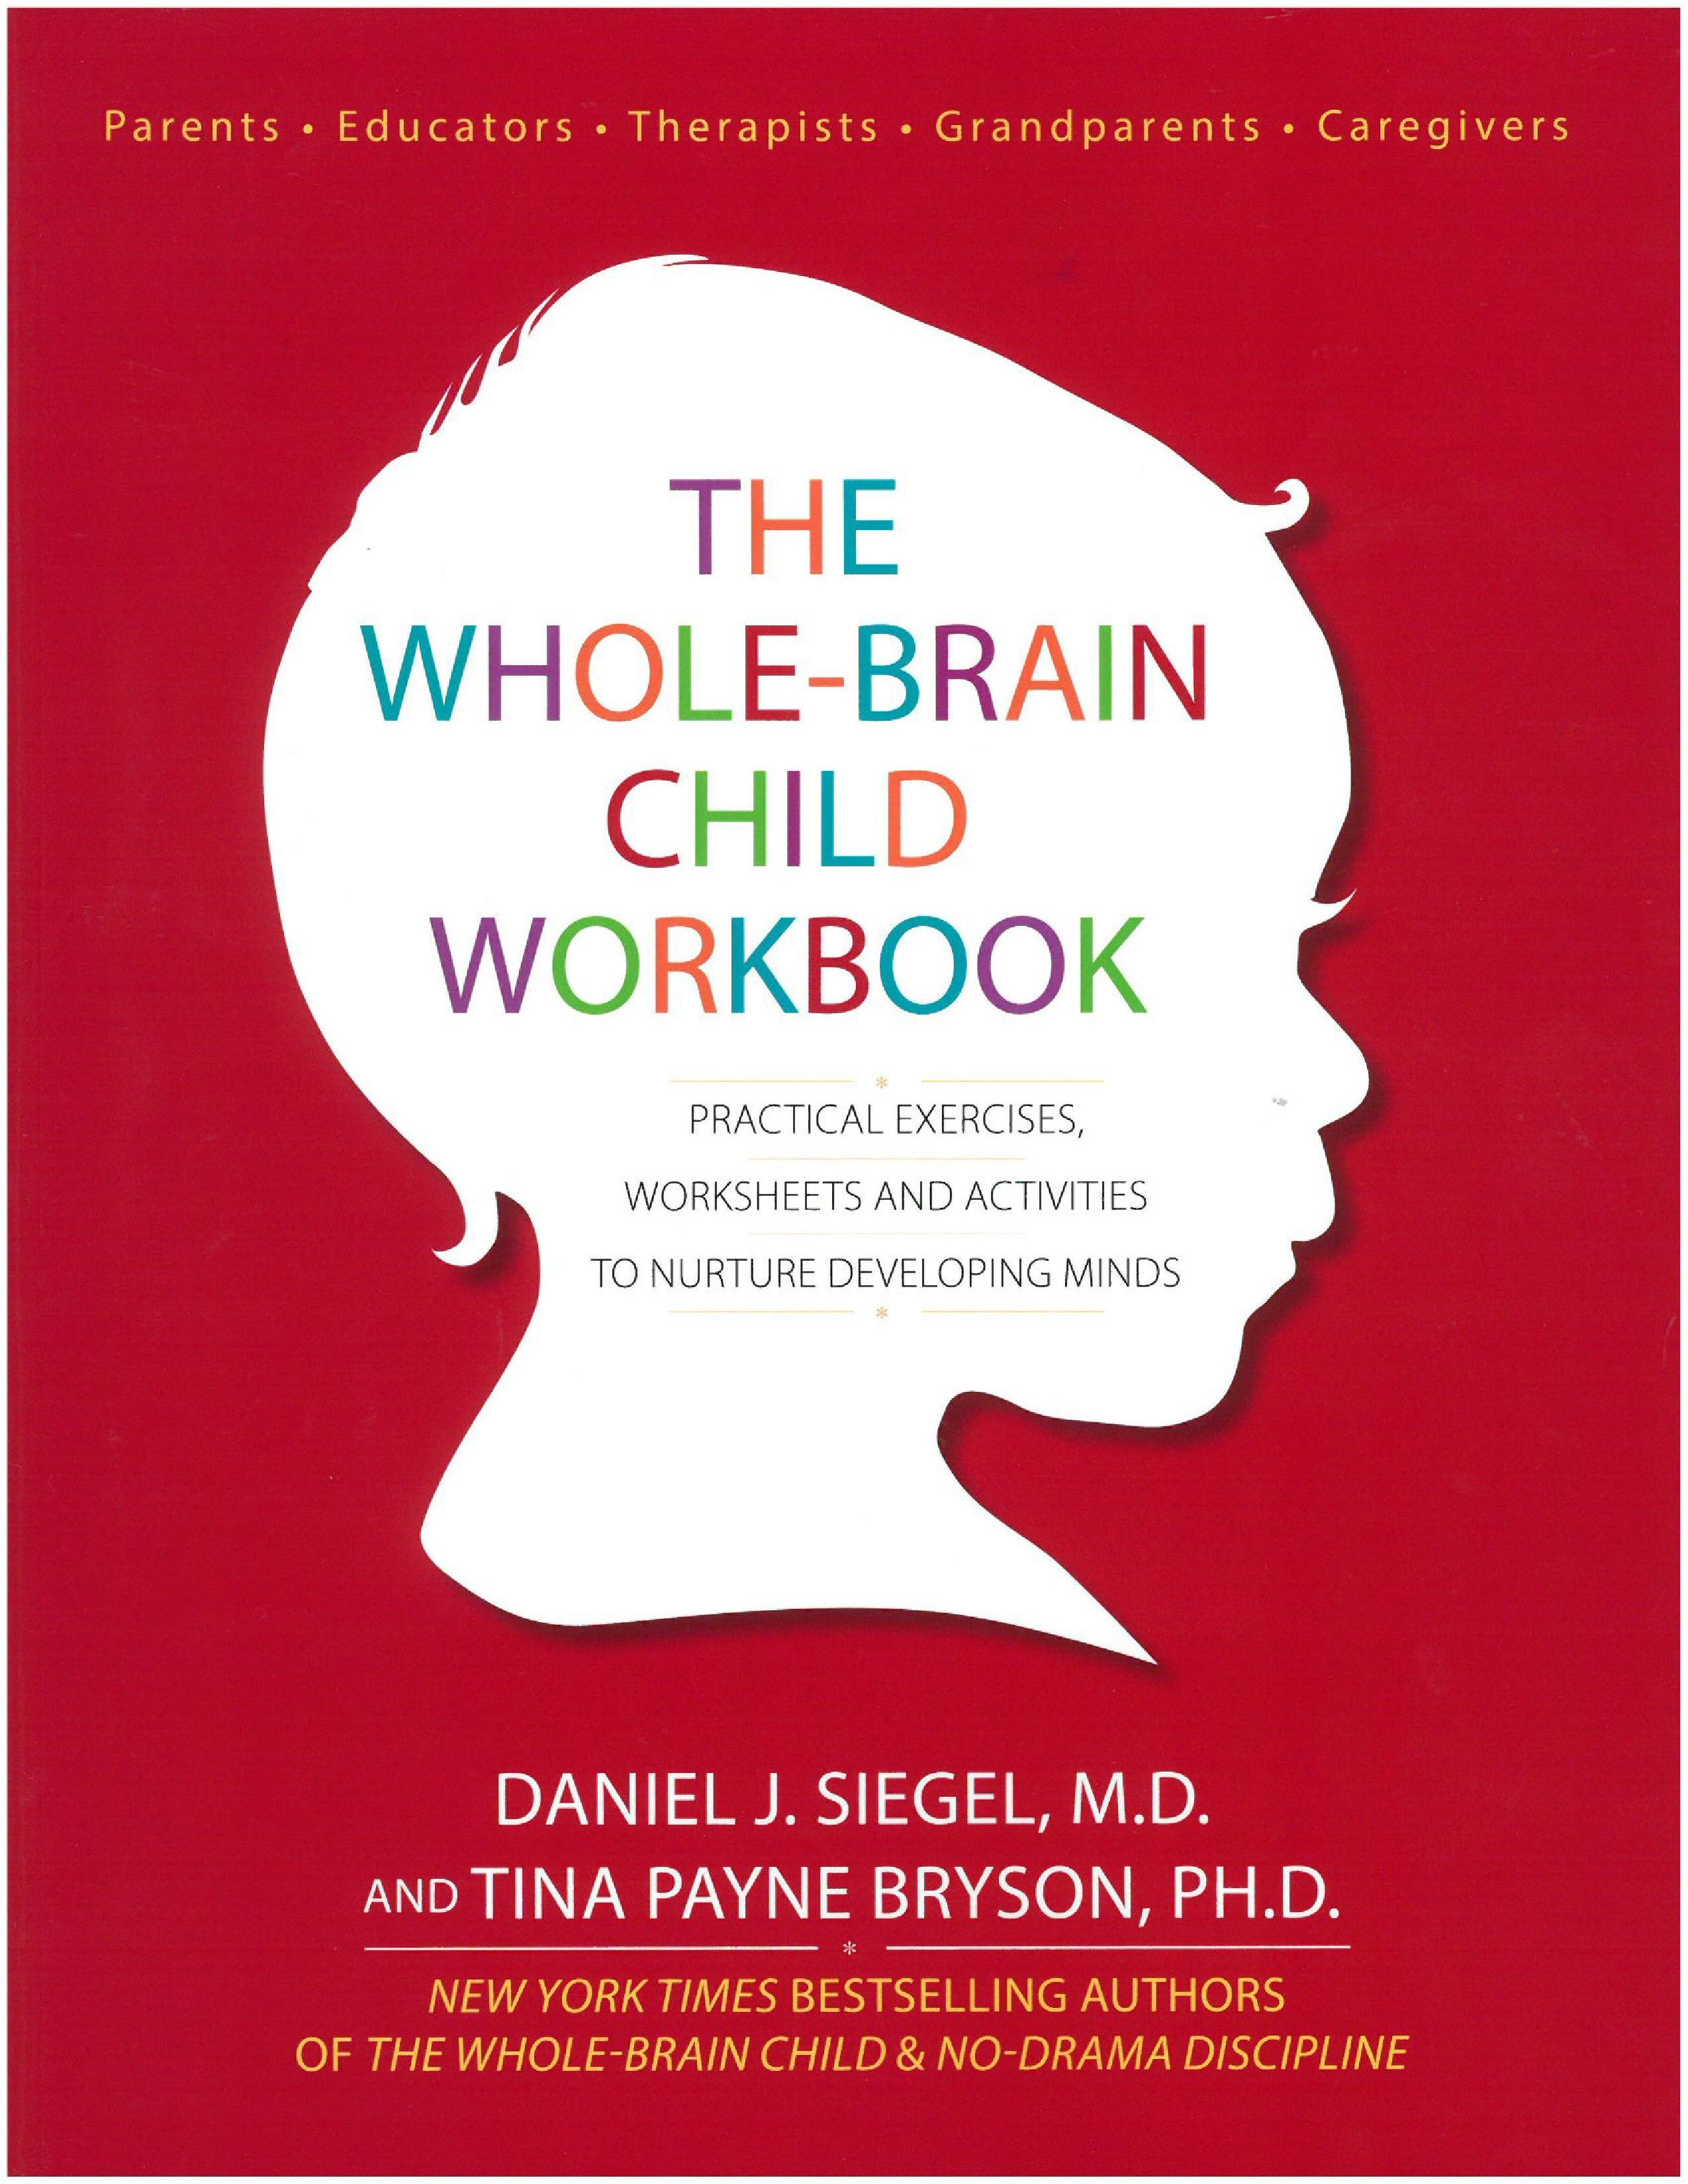 A Companion Workbook To The Whole Brain Child To Apply